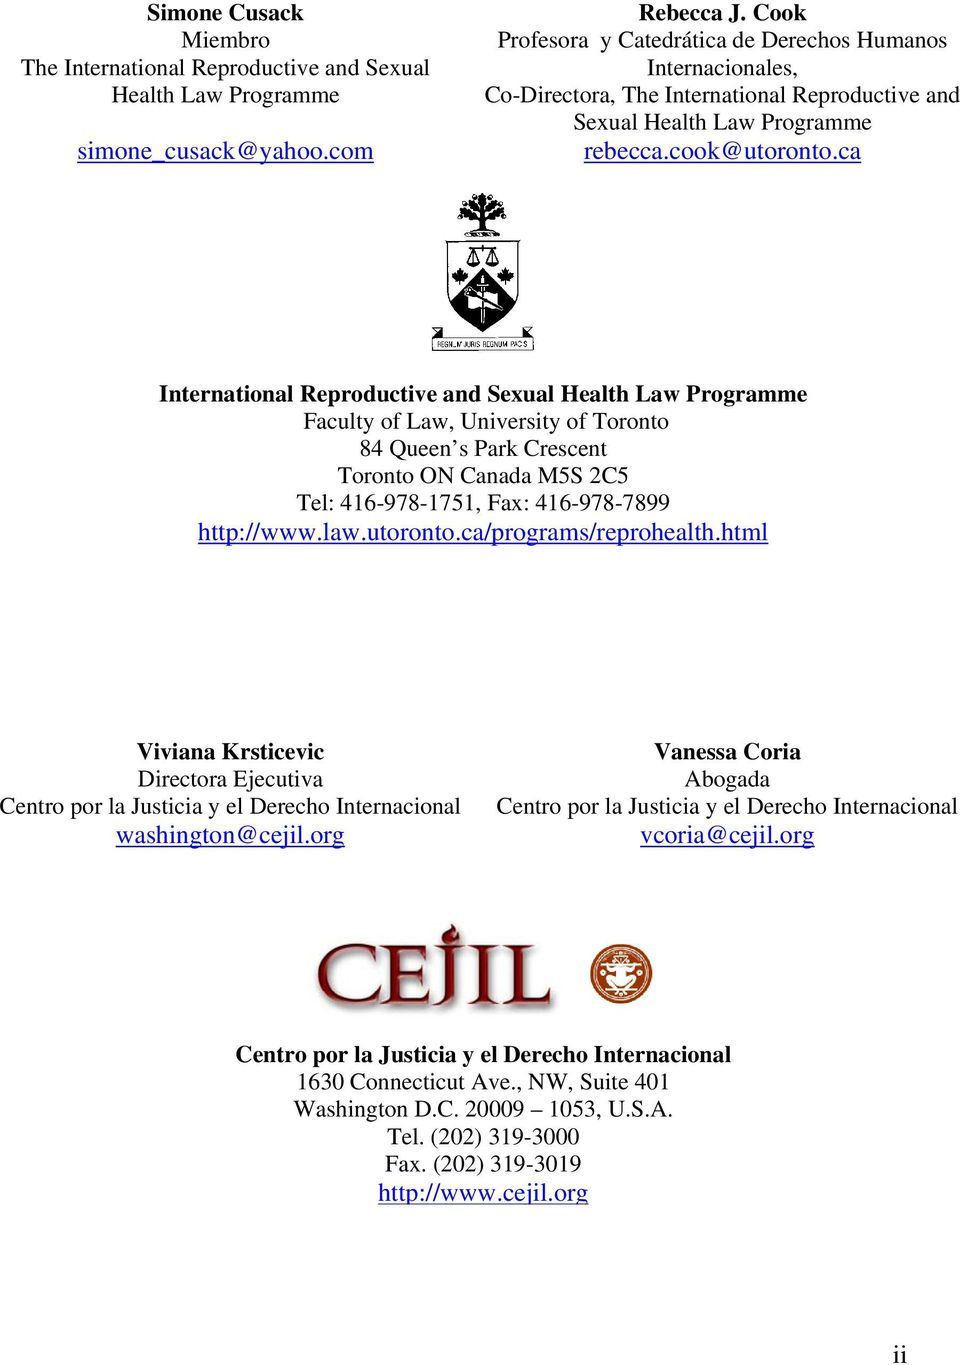 ca International Reproductive and Sexual Health Law Programme Faculty of Law, University of Toronto 84 Queen s Park Crescent Toronto ON Canada M5S 2C5 Tel: 416-978-1751, Fax: 416-978-7899 http://www.